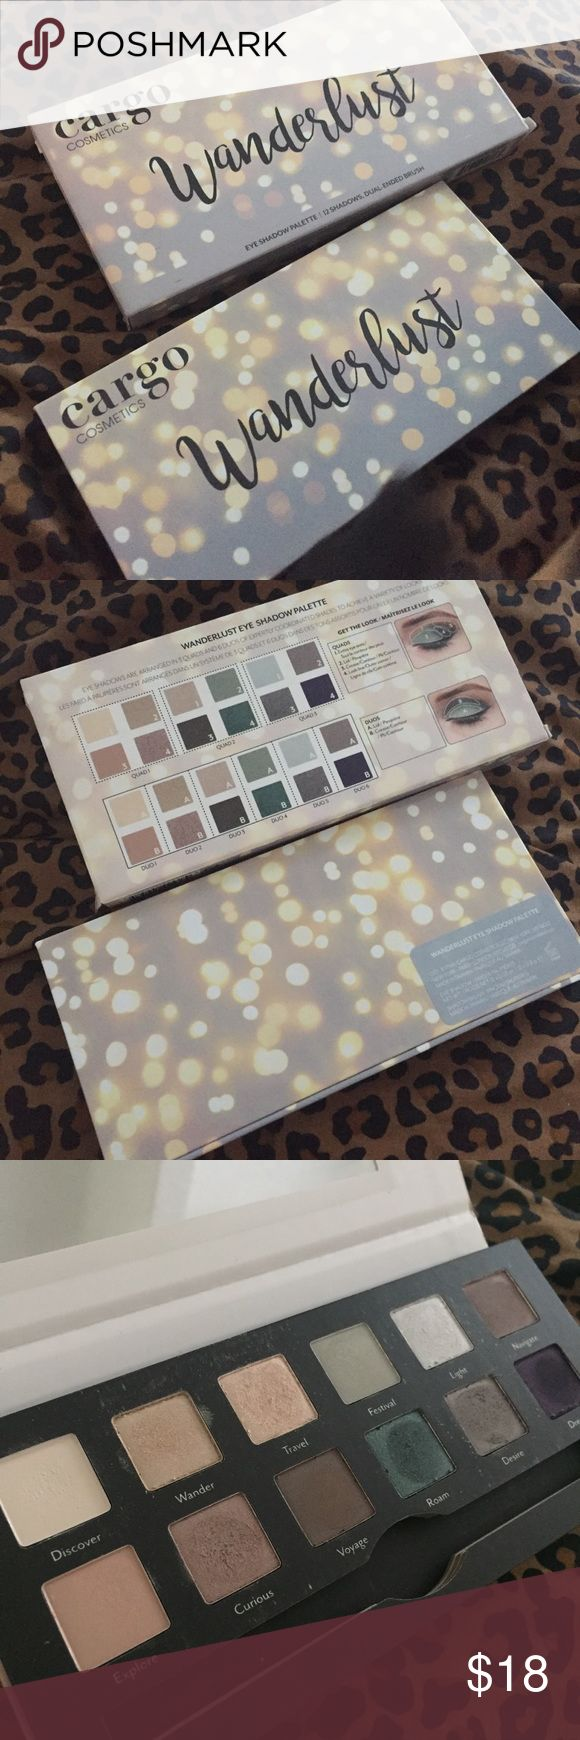 BNIB Cargo Cosmetics Wanderlust Eyeshadow Palette BNIB Cargo Cosmetics Wanderlust Eyeshadow Palette has only ever been swatched! Will consider trades  Cargo Cosmetics Makeup Eyeshadow